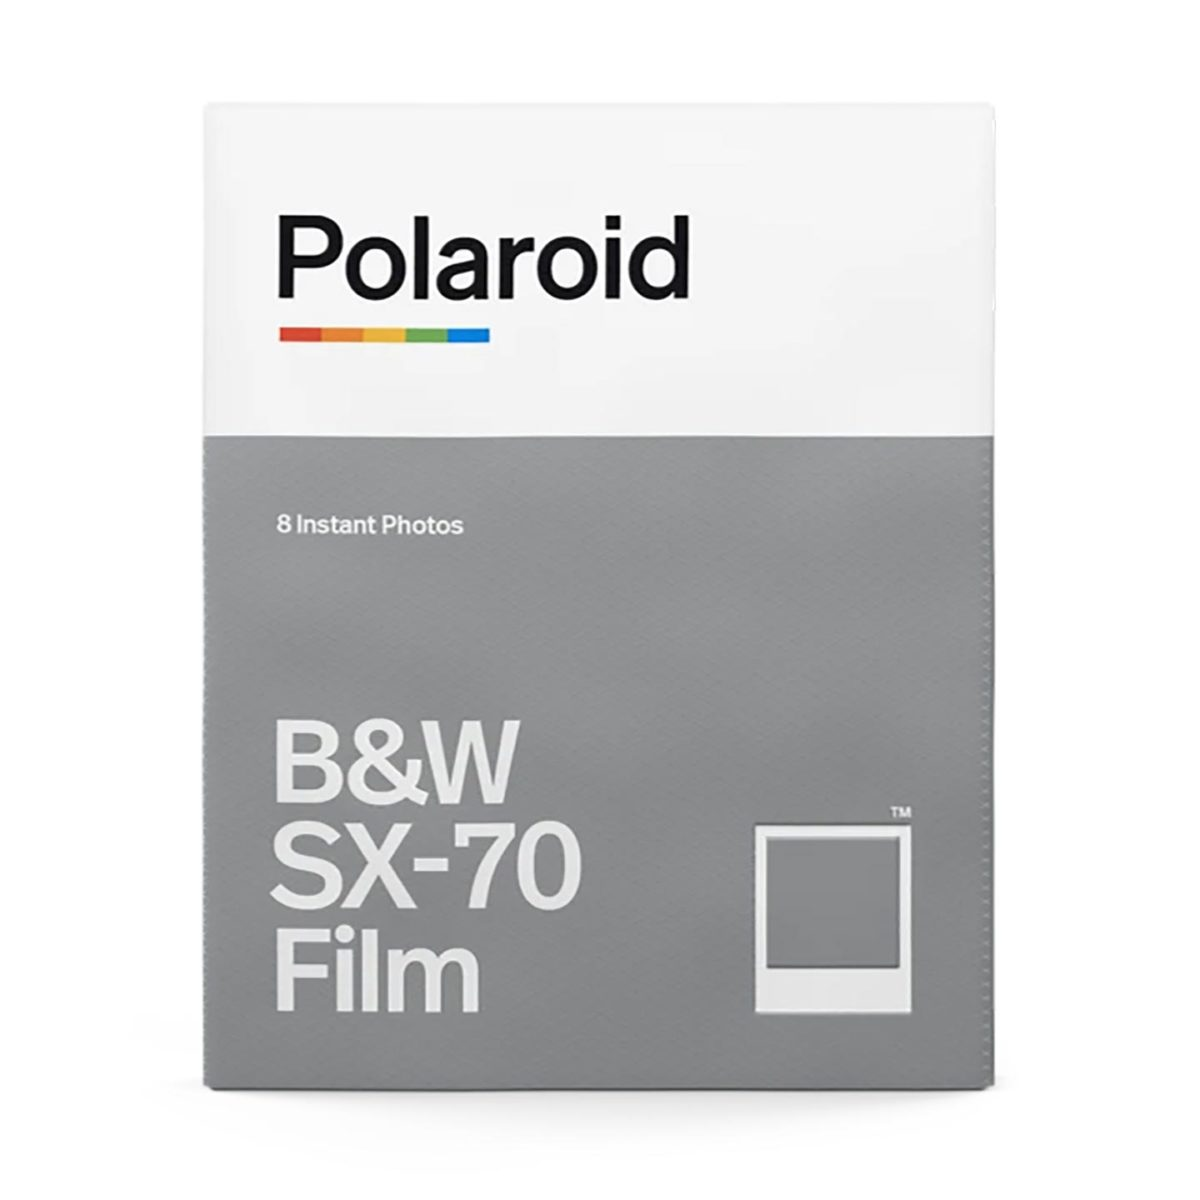 polaroid_sx70_bw_film_02